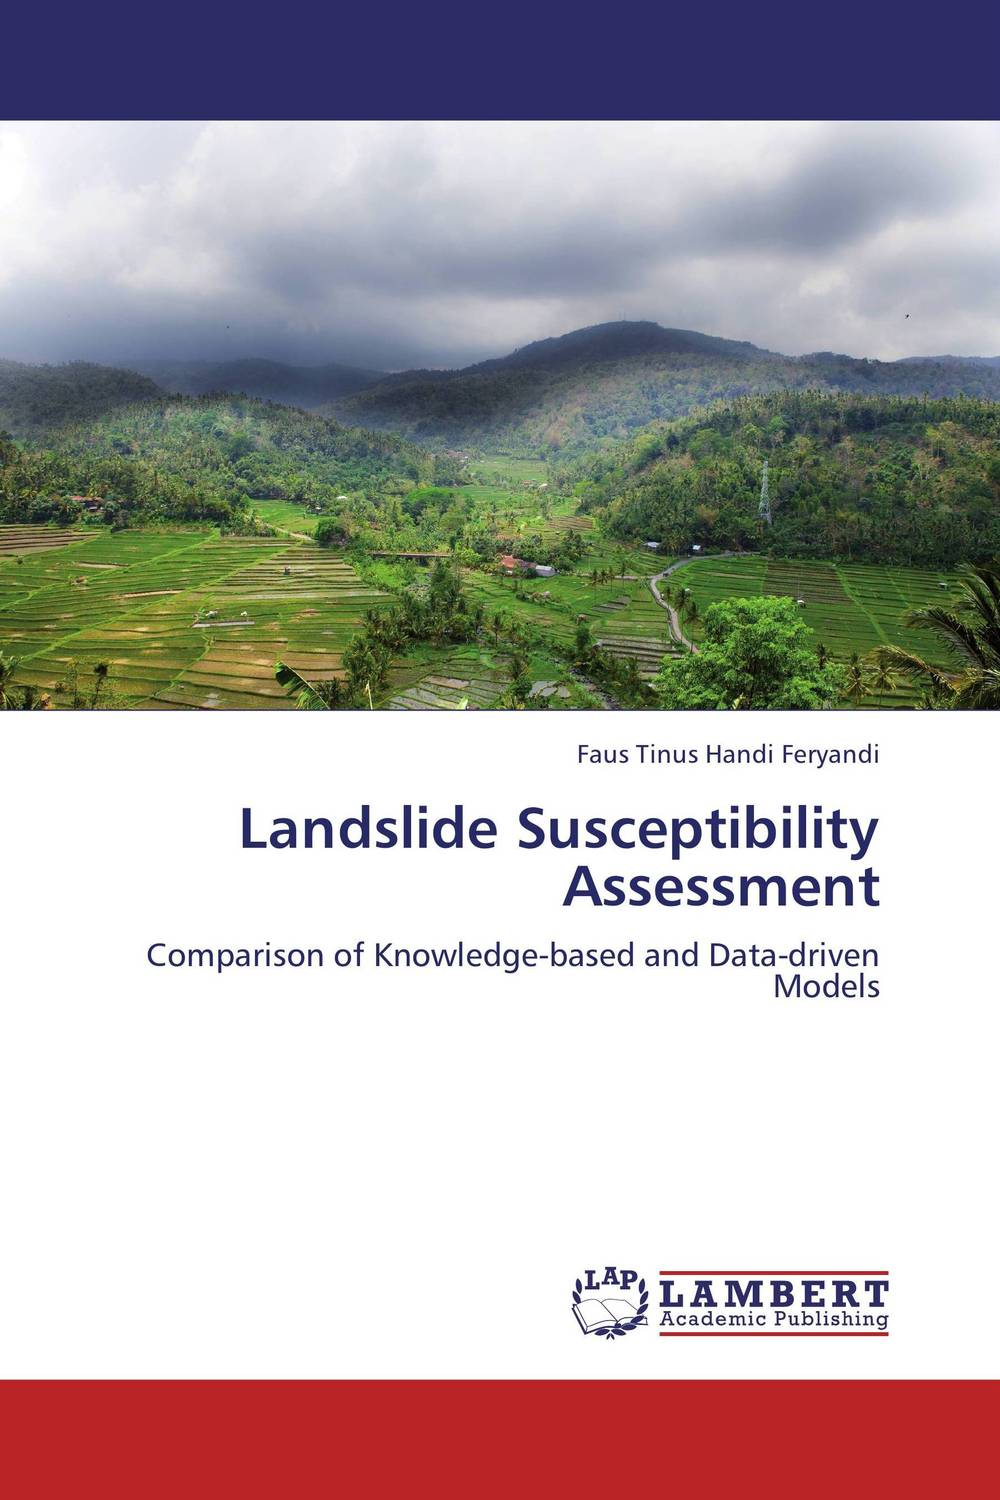 Landslide Susceptibility Assessment driven to distraction